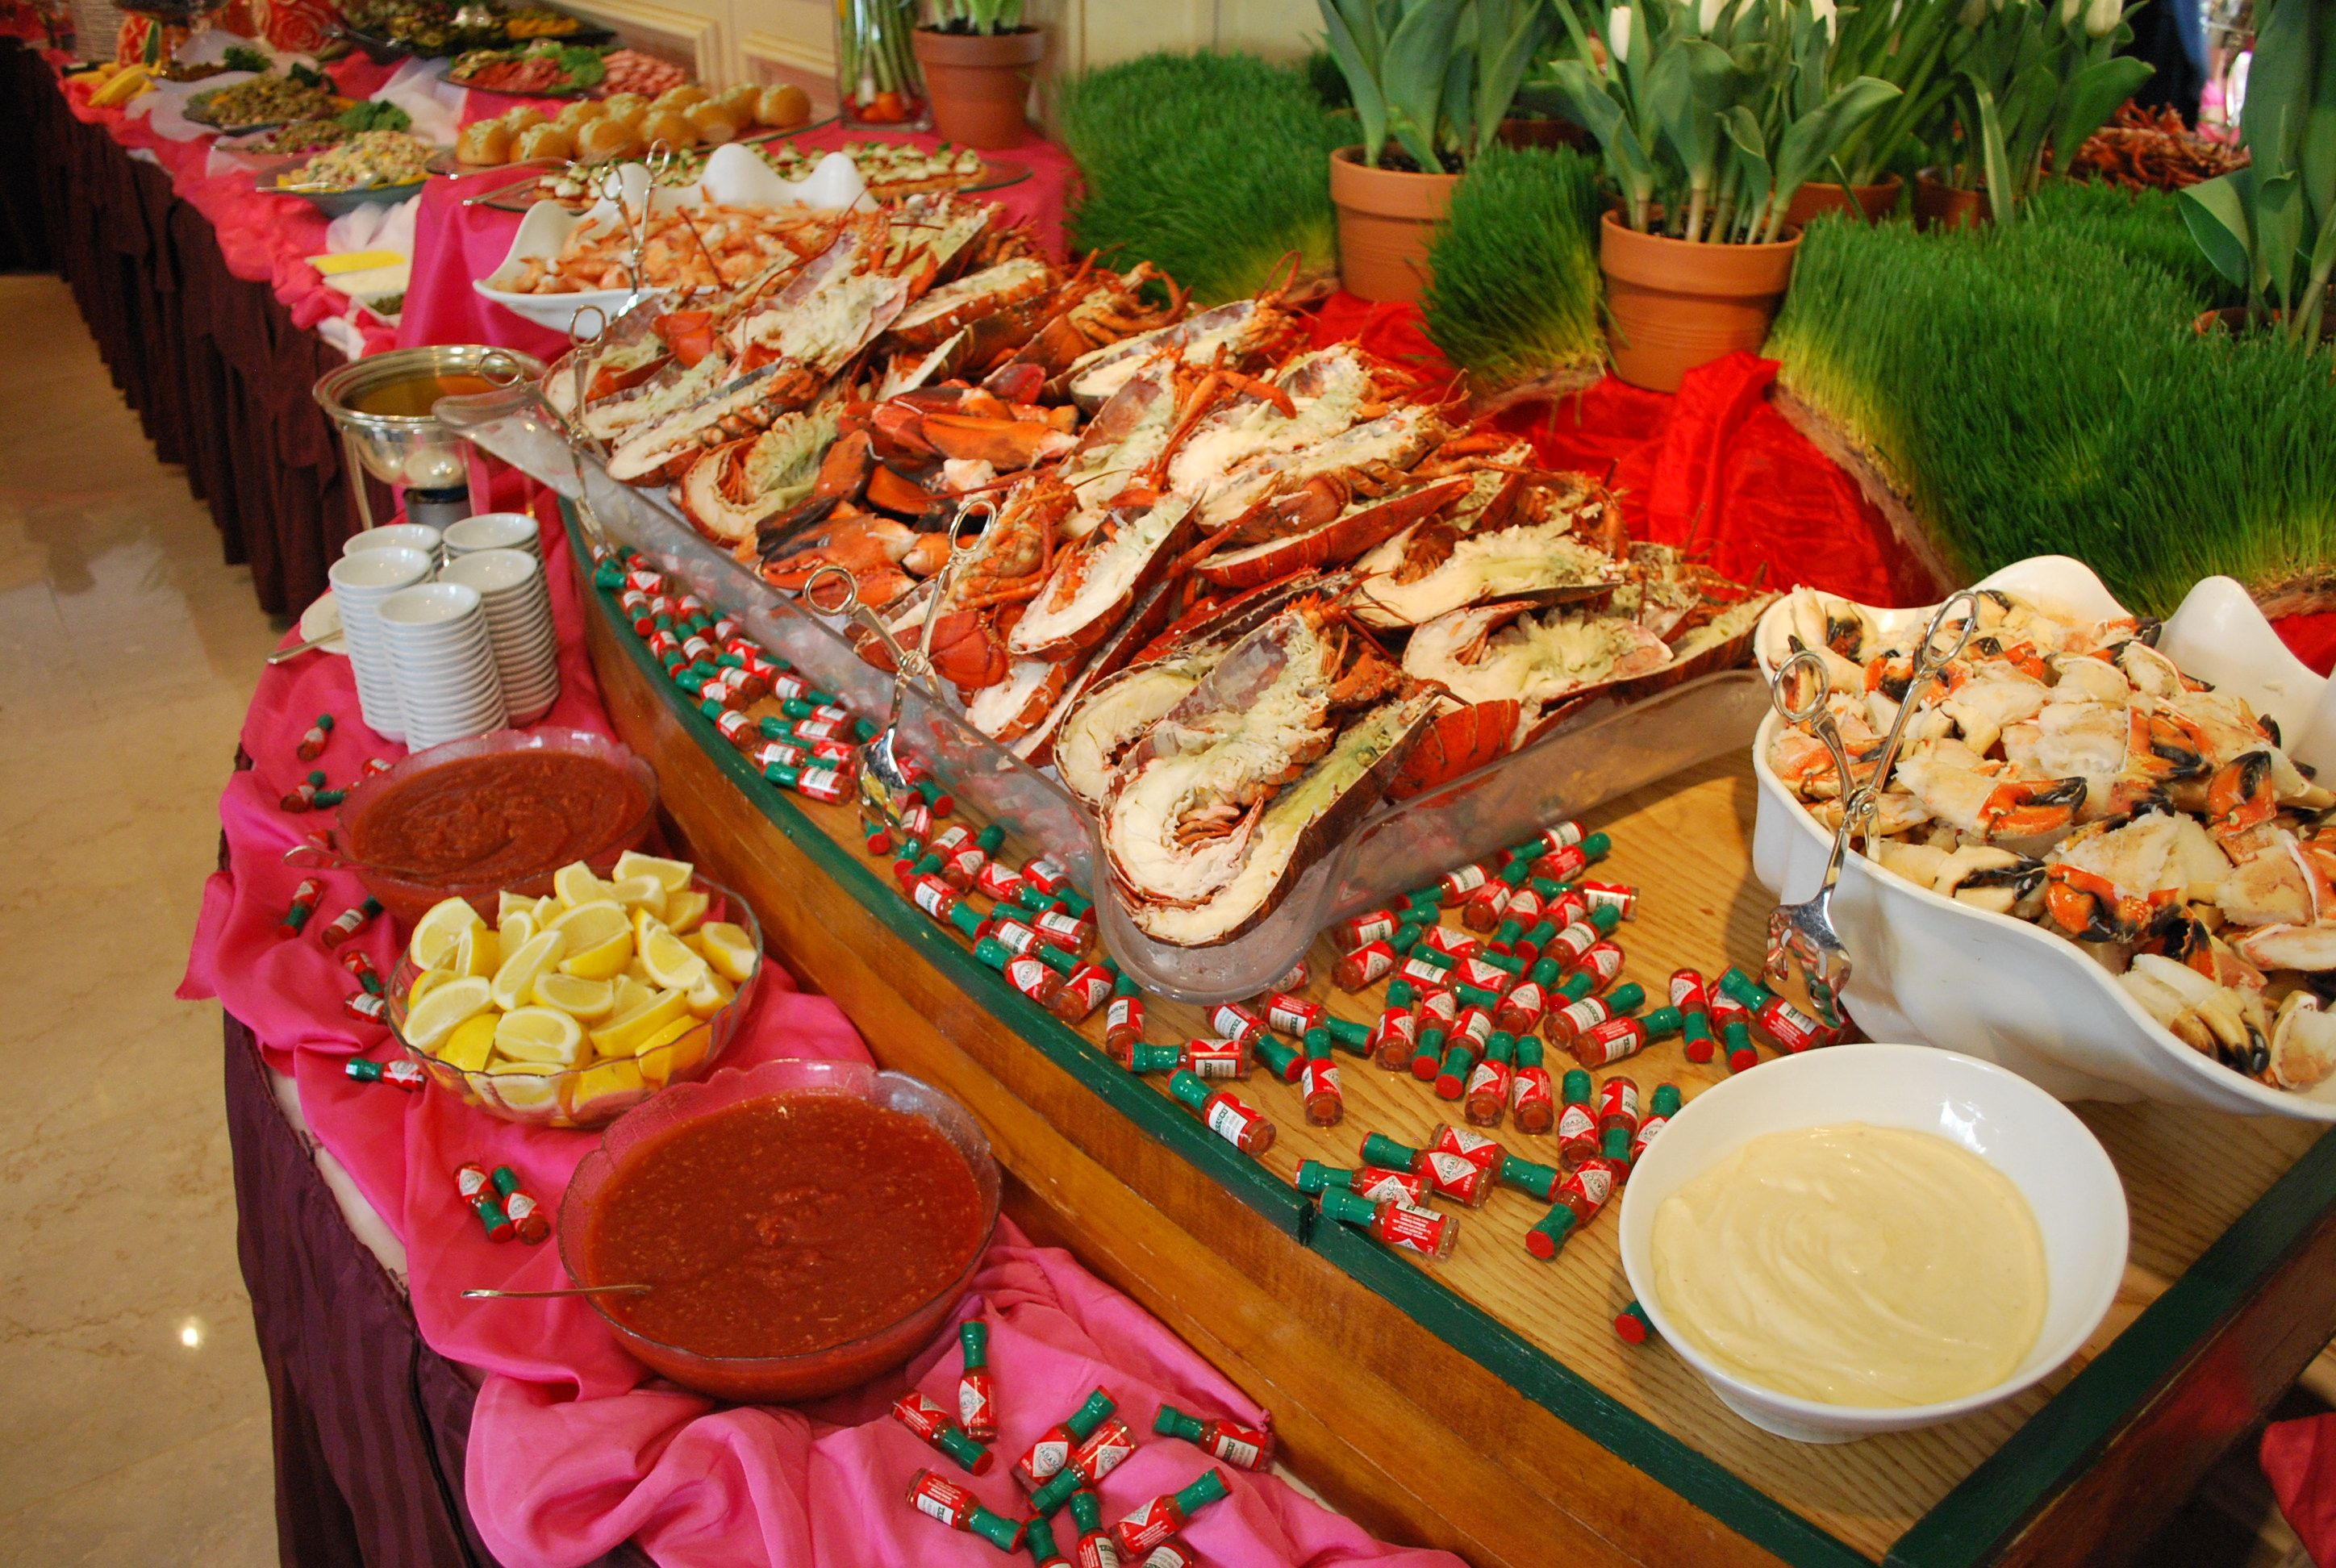 Seafood station at The Garden City Hotel Sunday brunch